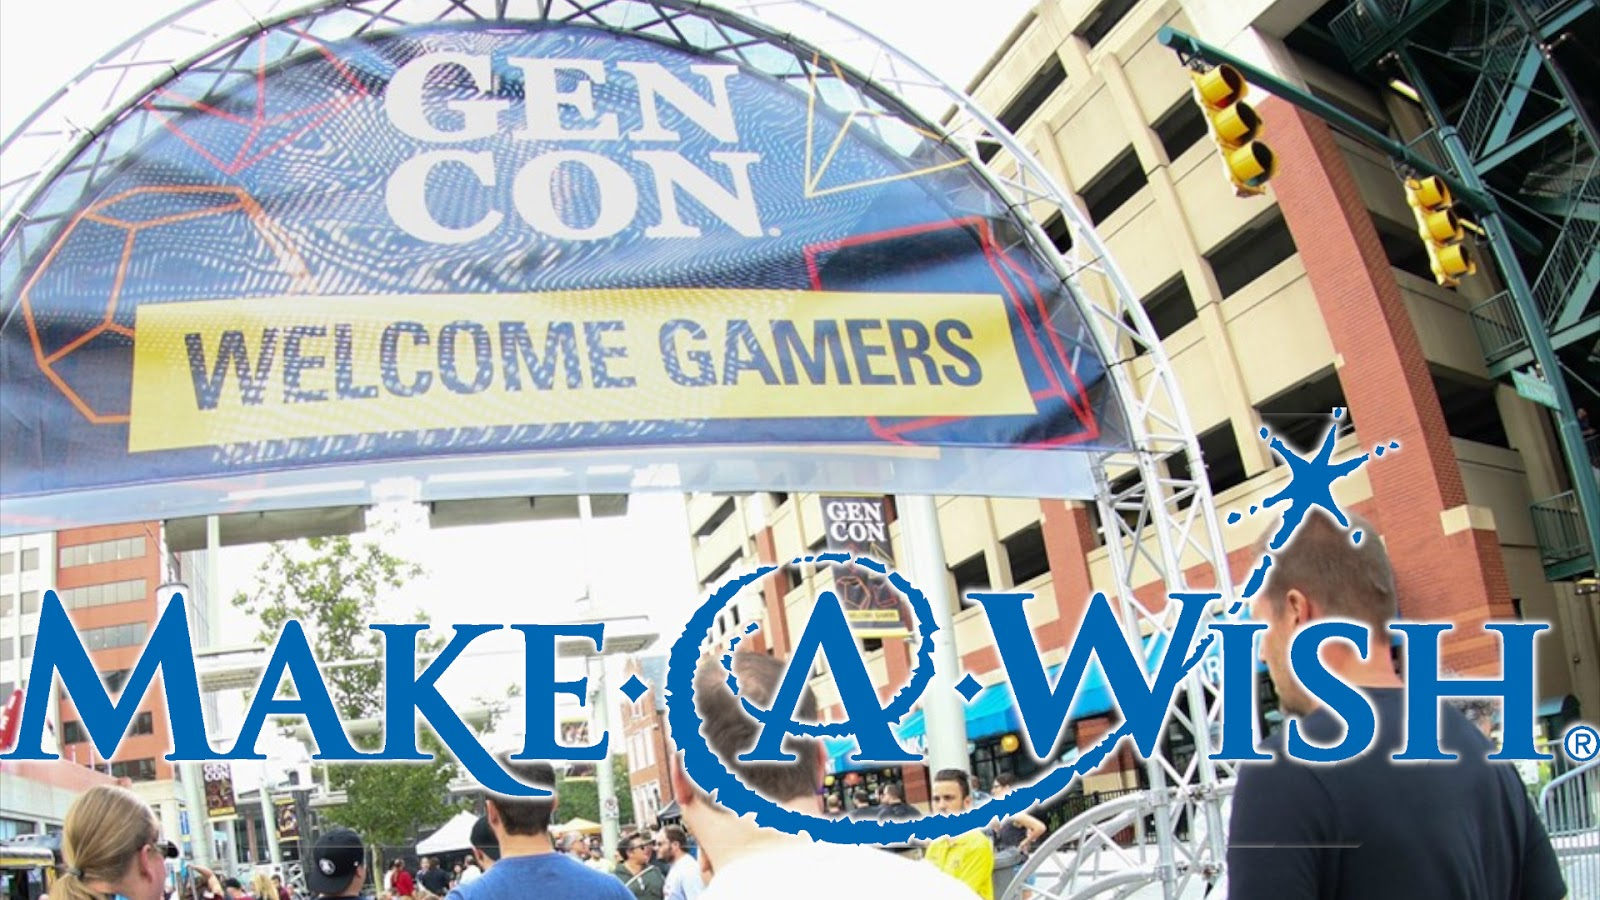 News Collider Board Game News Gen Con Make A Wish for boy with tumor